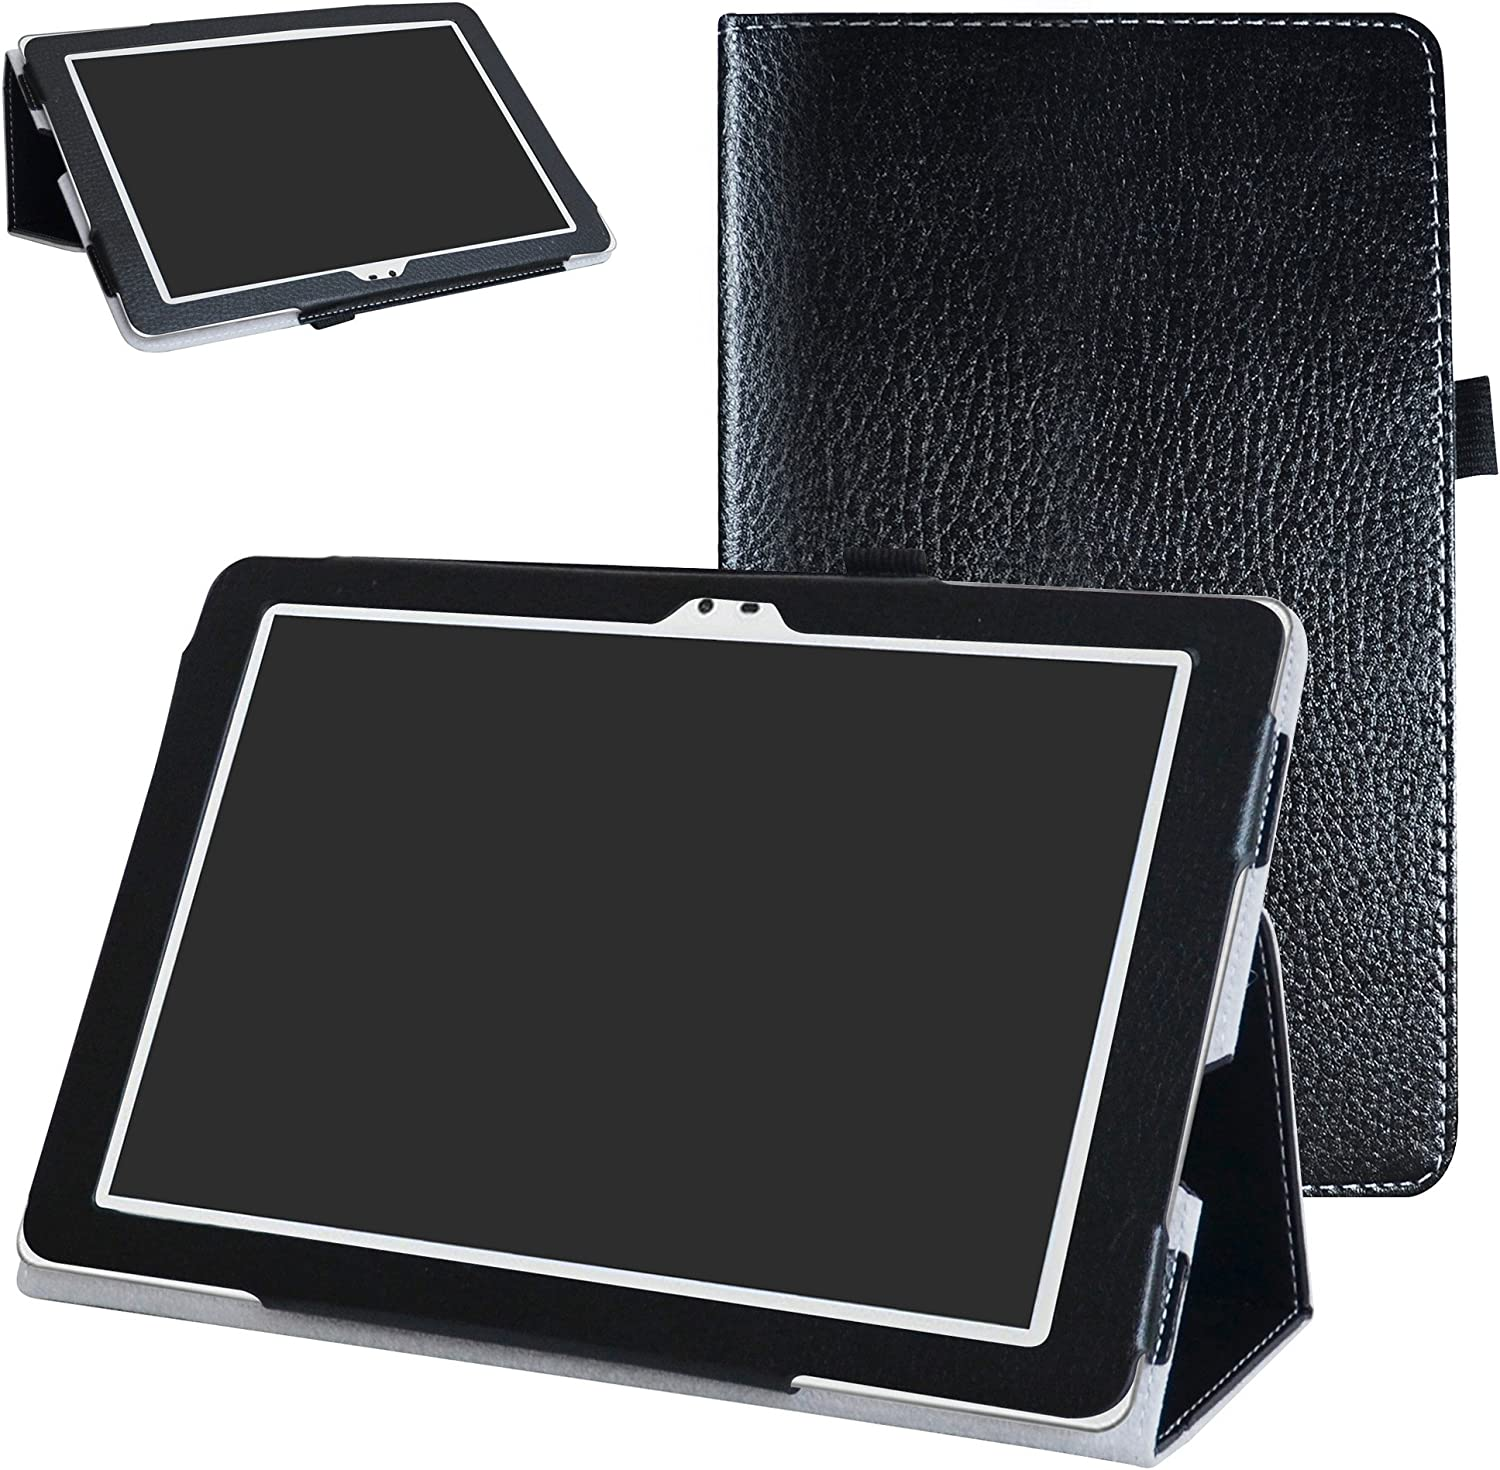 "Insignia Flex NS-P16AT10 10.1"" Tablet Case,Mama Mouth PU Leather Folio 2-Folding Stand Cover for 10.1"" Insignia Flex 10.1 NS-P16AT10 Tablet,Black"